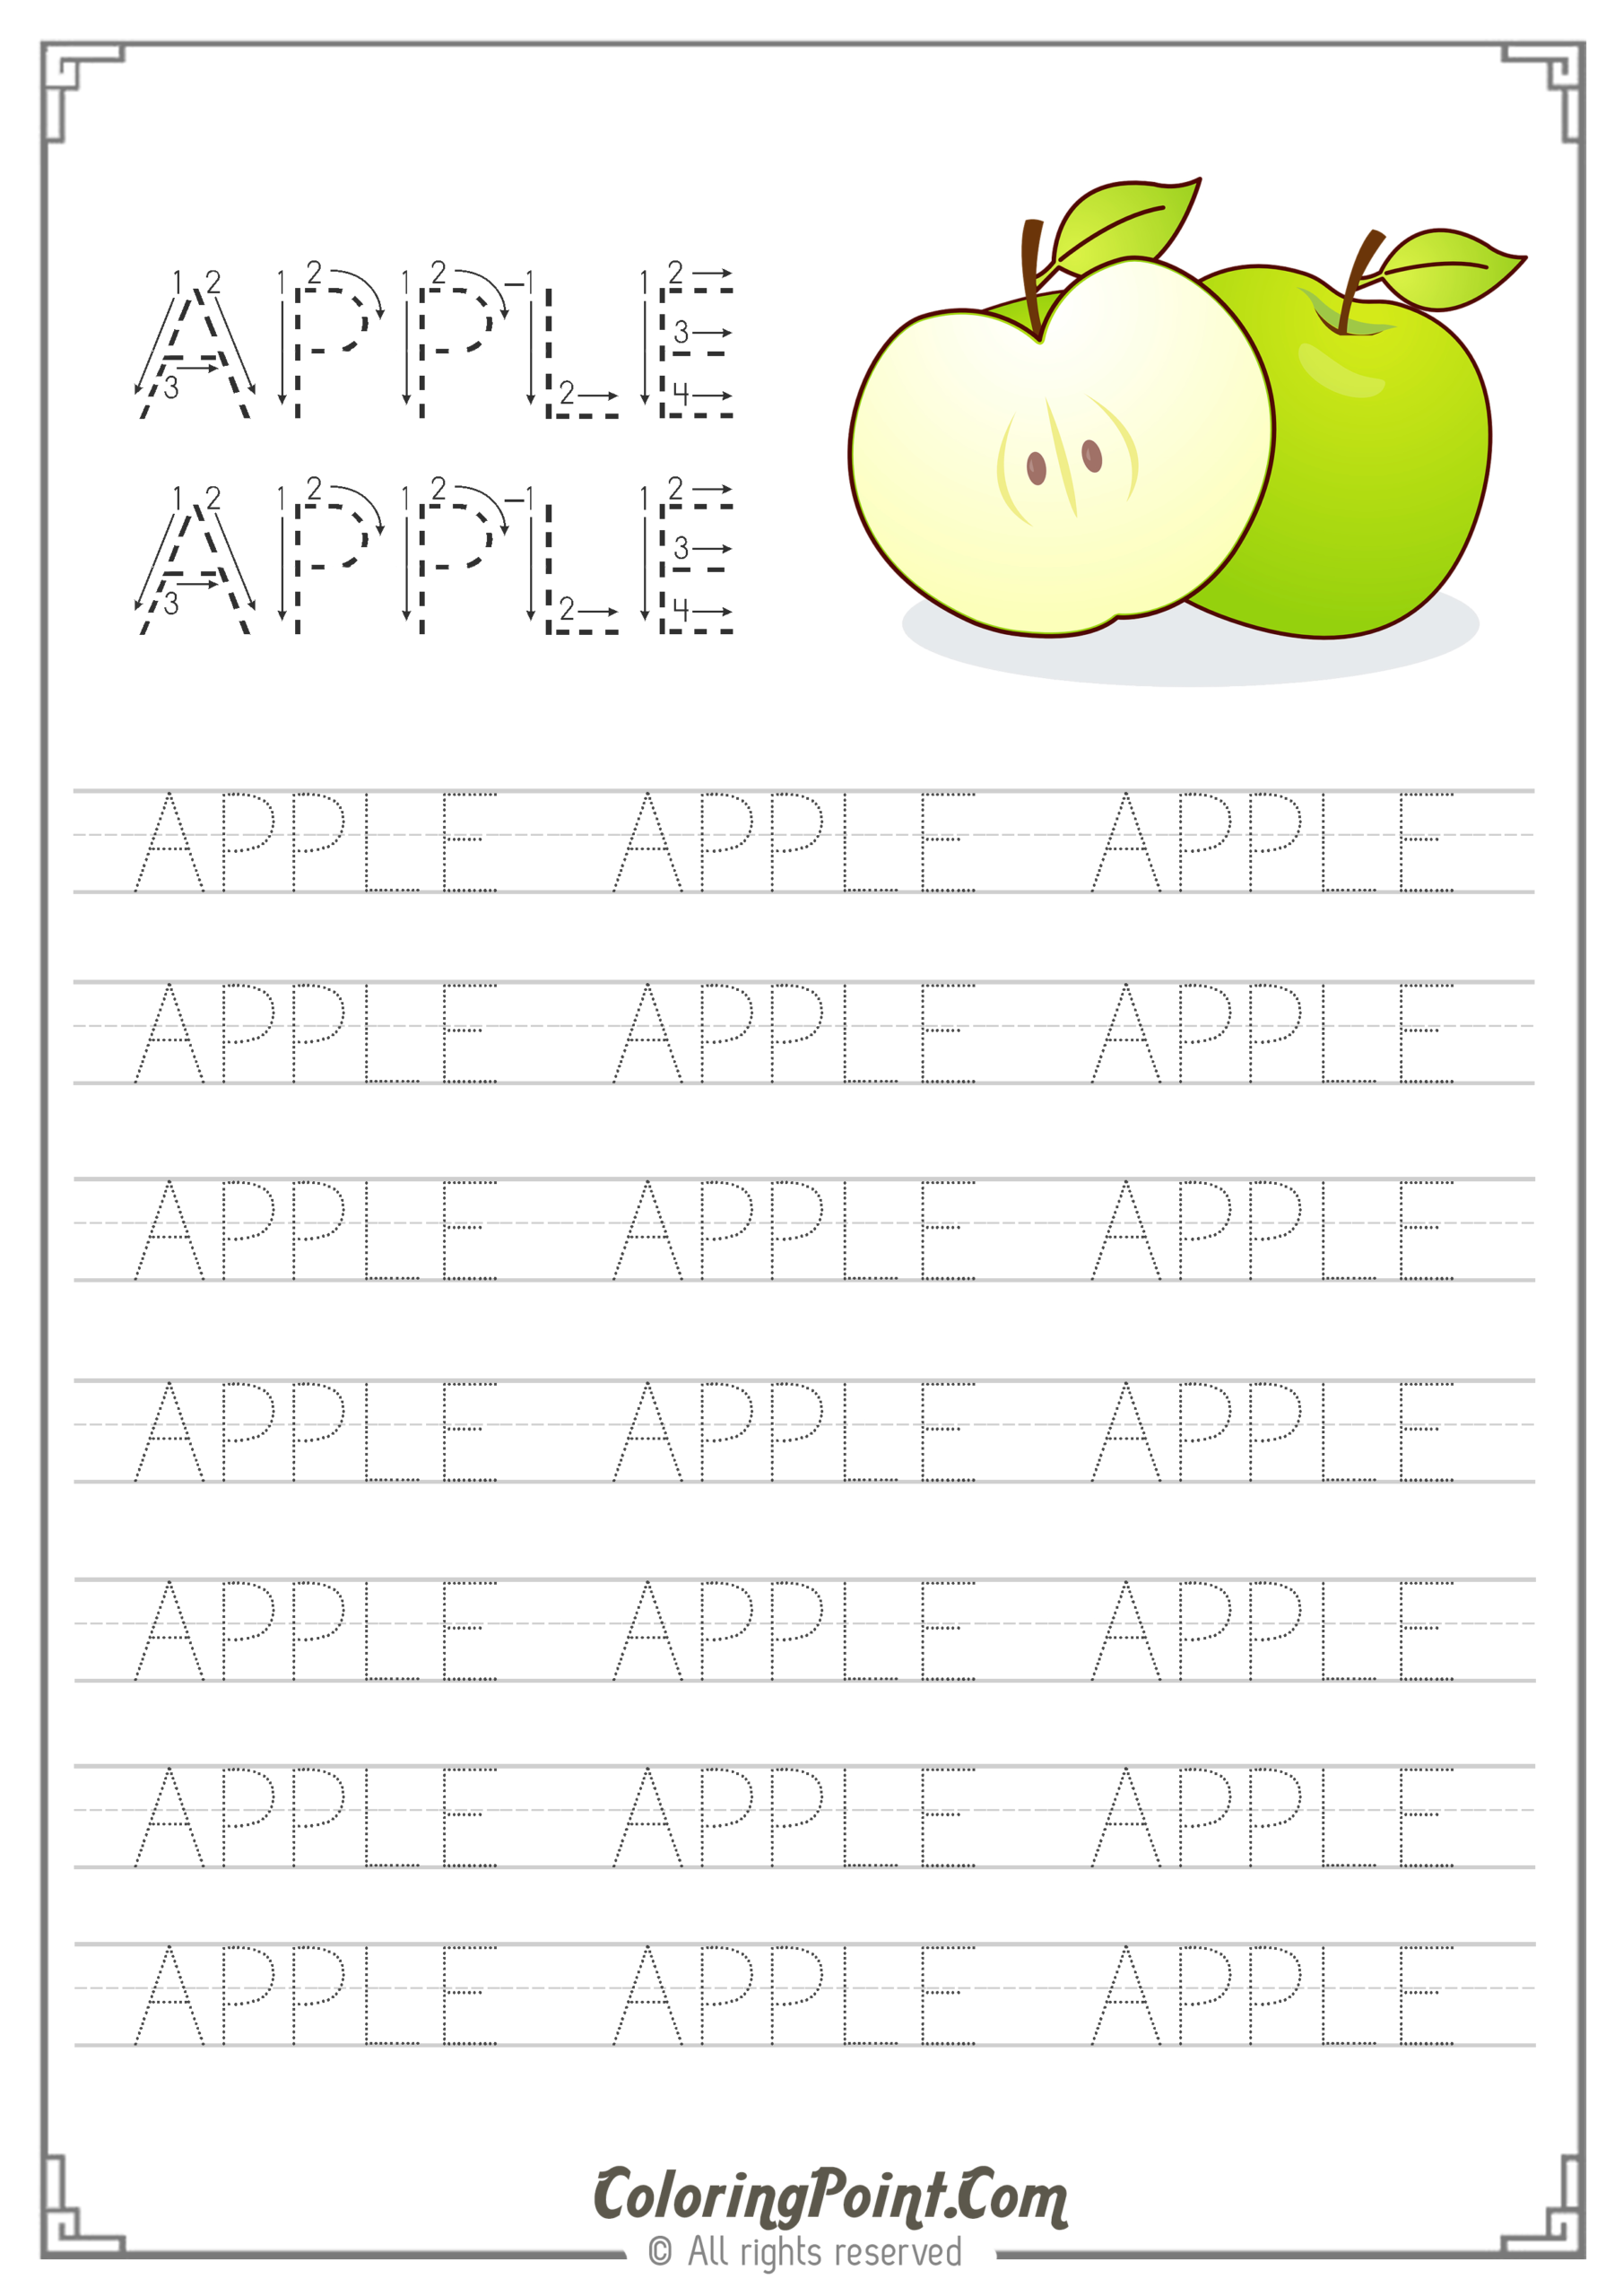 Free Printable Worksheets Ready To Print A4 Paper Size intended for Dot Letters For Tracing Names